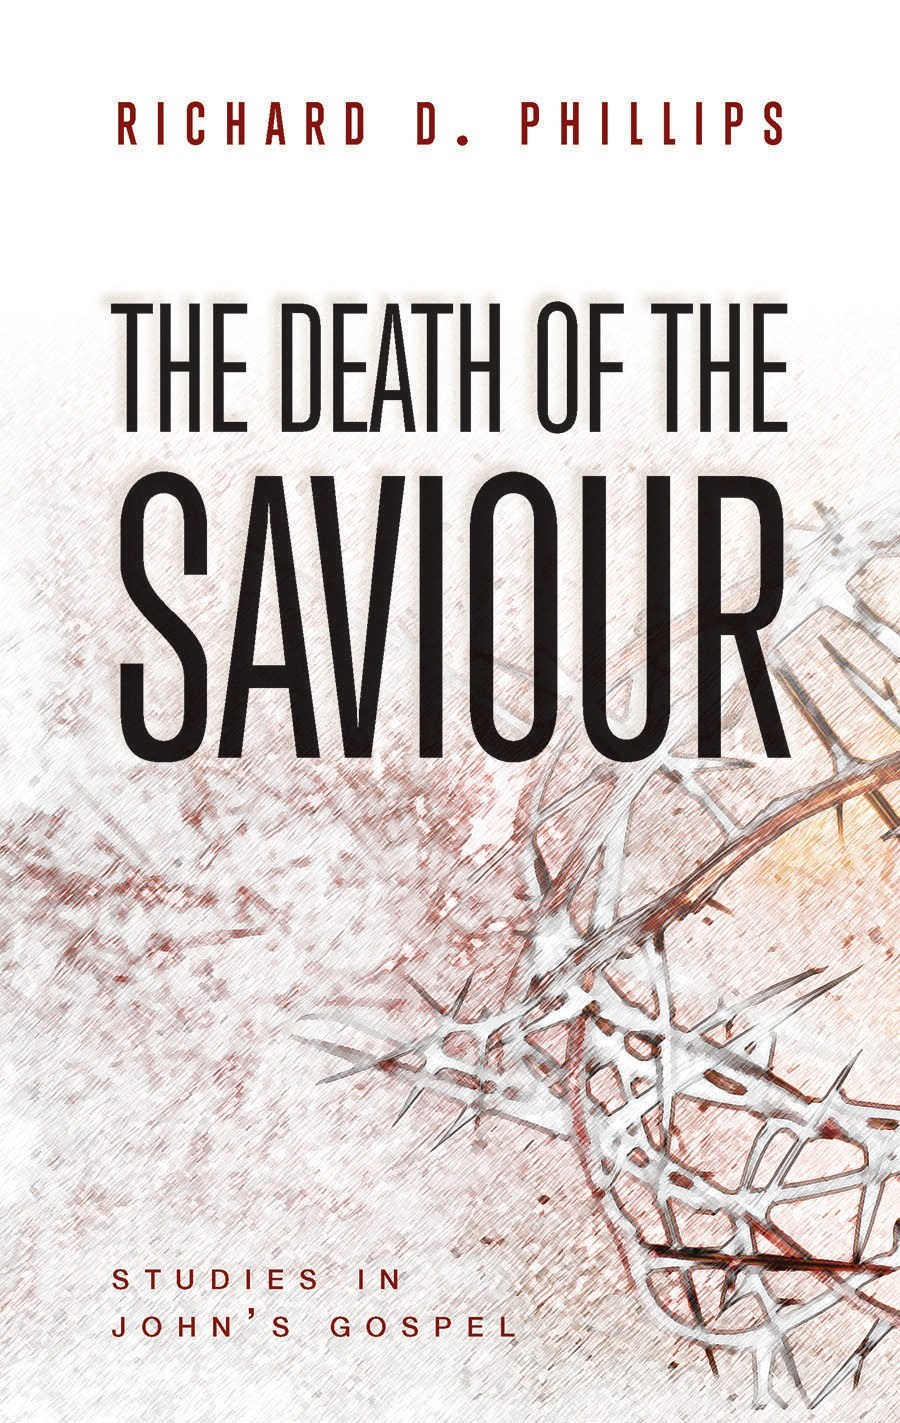 The Death of the Saviour